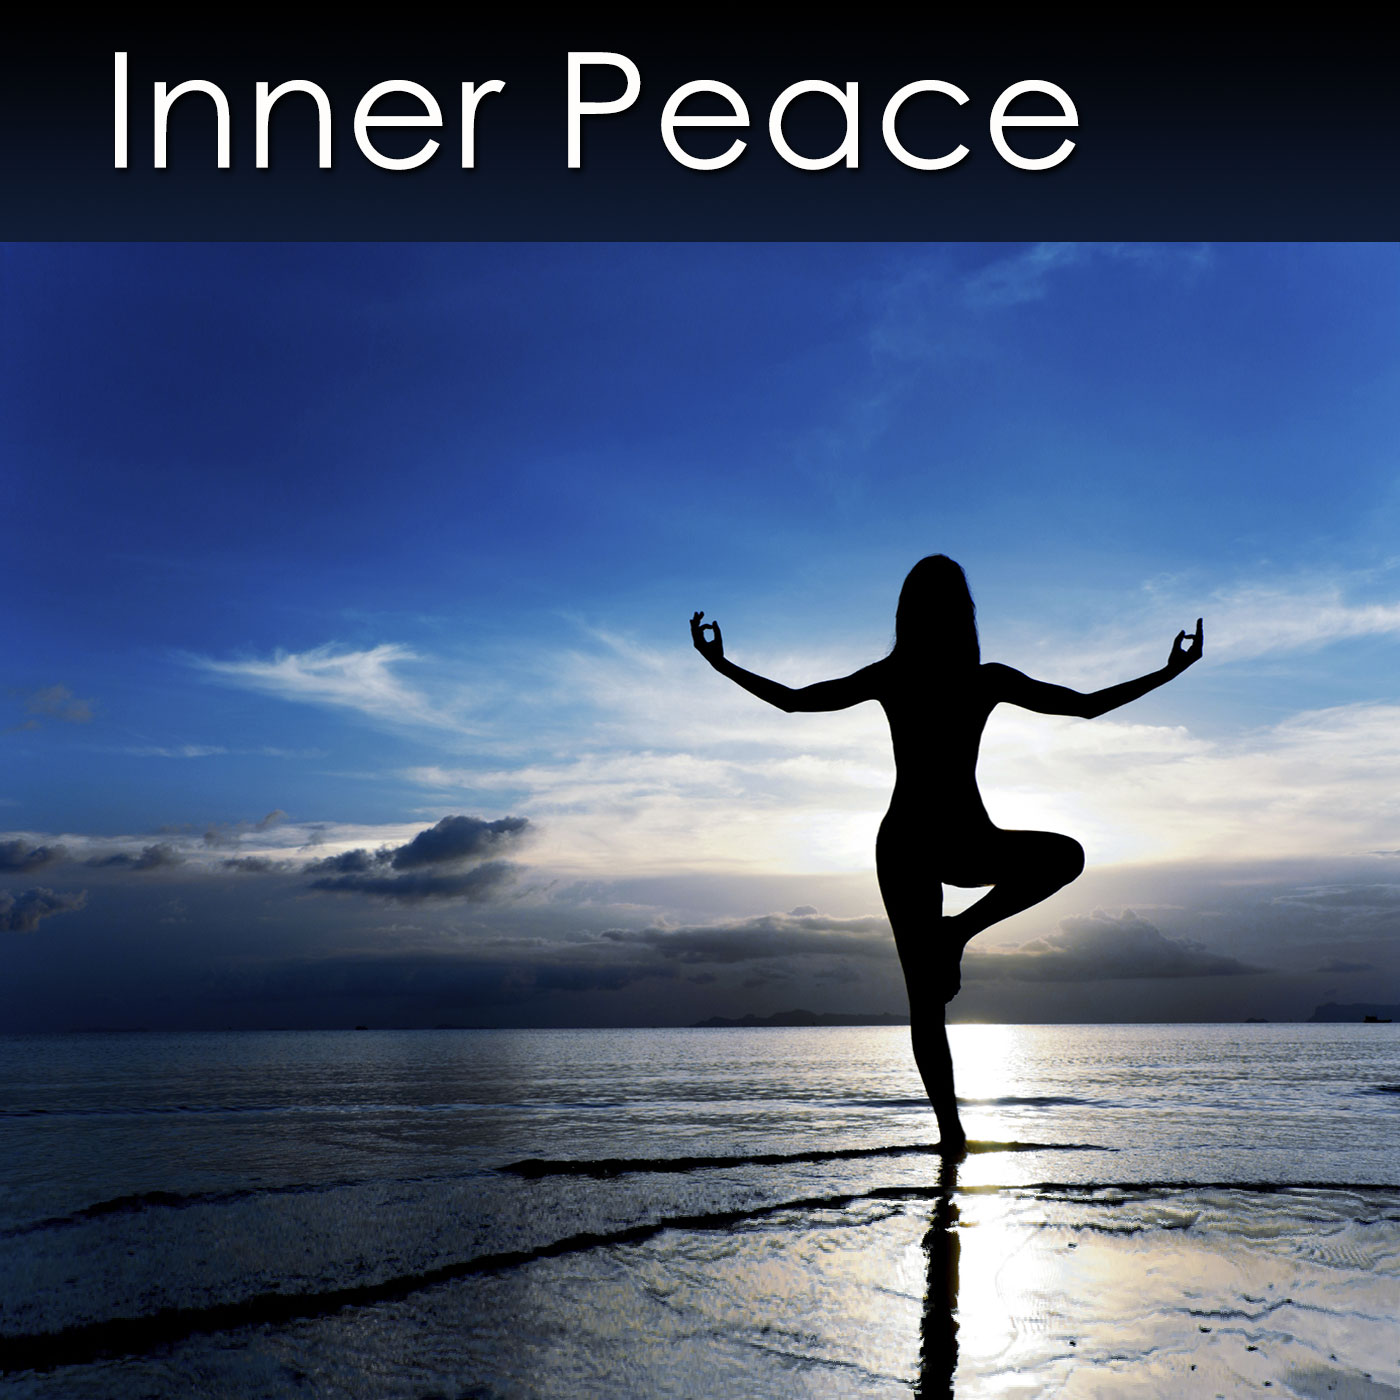 inner peace At inner peace ct, we implement a fundamentally whole approach to wellness our licensed clinical social workers and personal counselors combine traditional talk therapy with mindfulness strategies and clinical yoga.